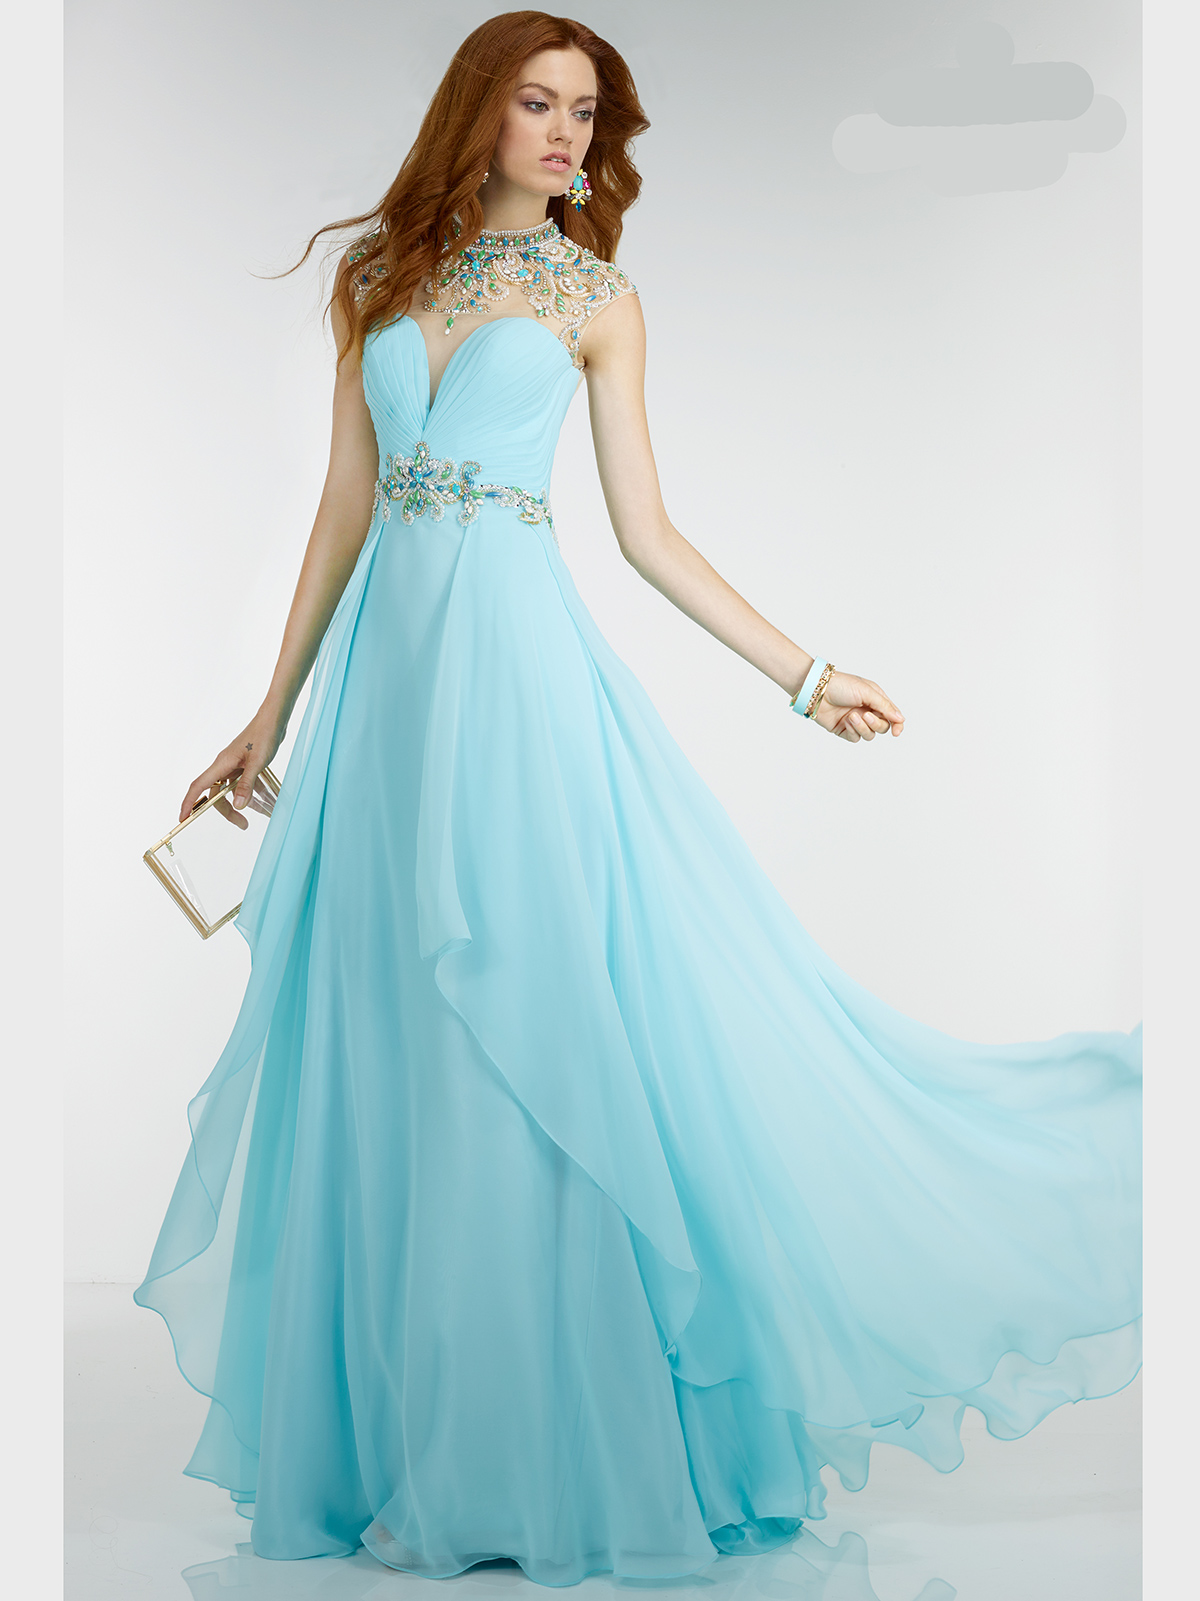 Greek -inspired Prom Dresses _Prom Dresses_dressesss